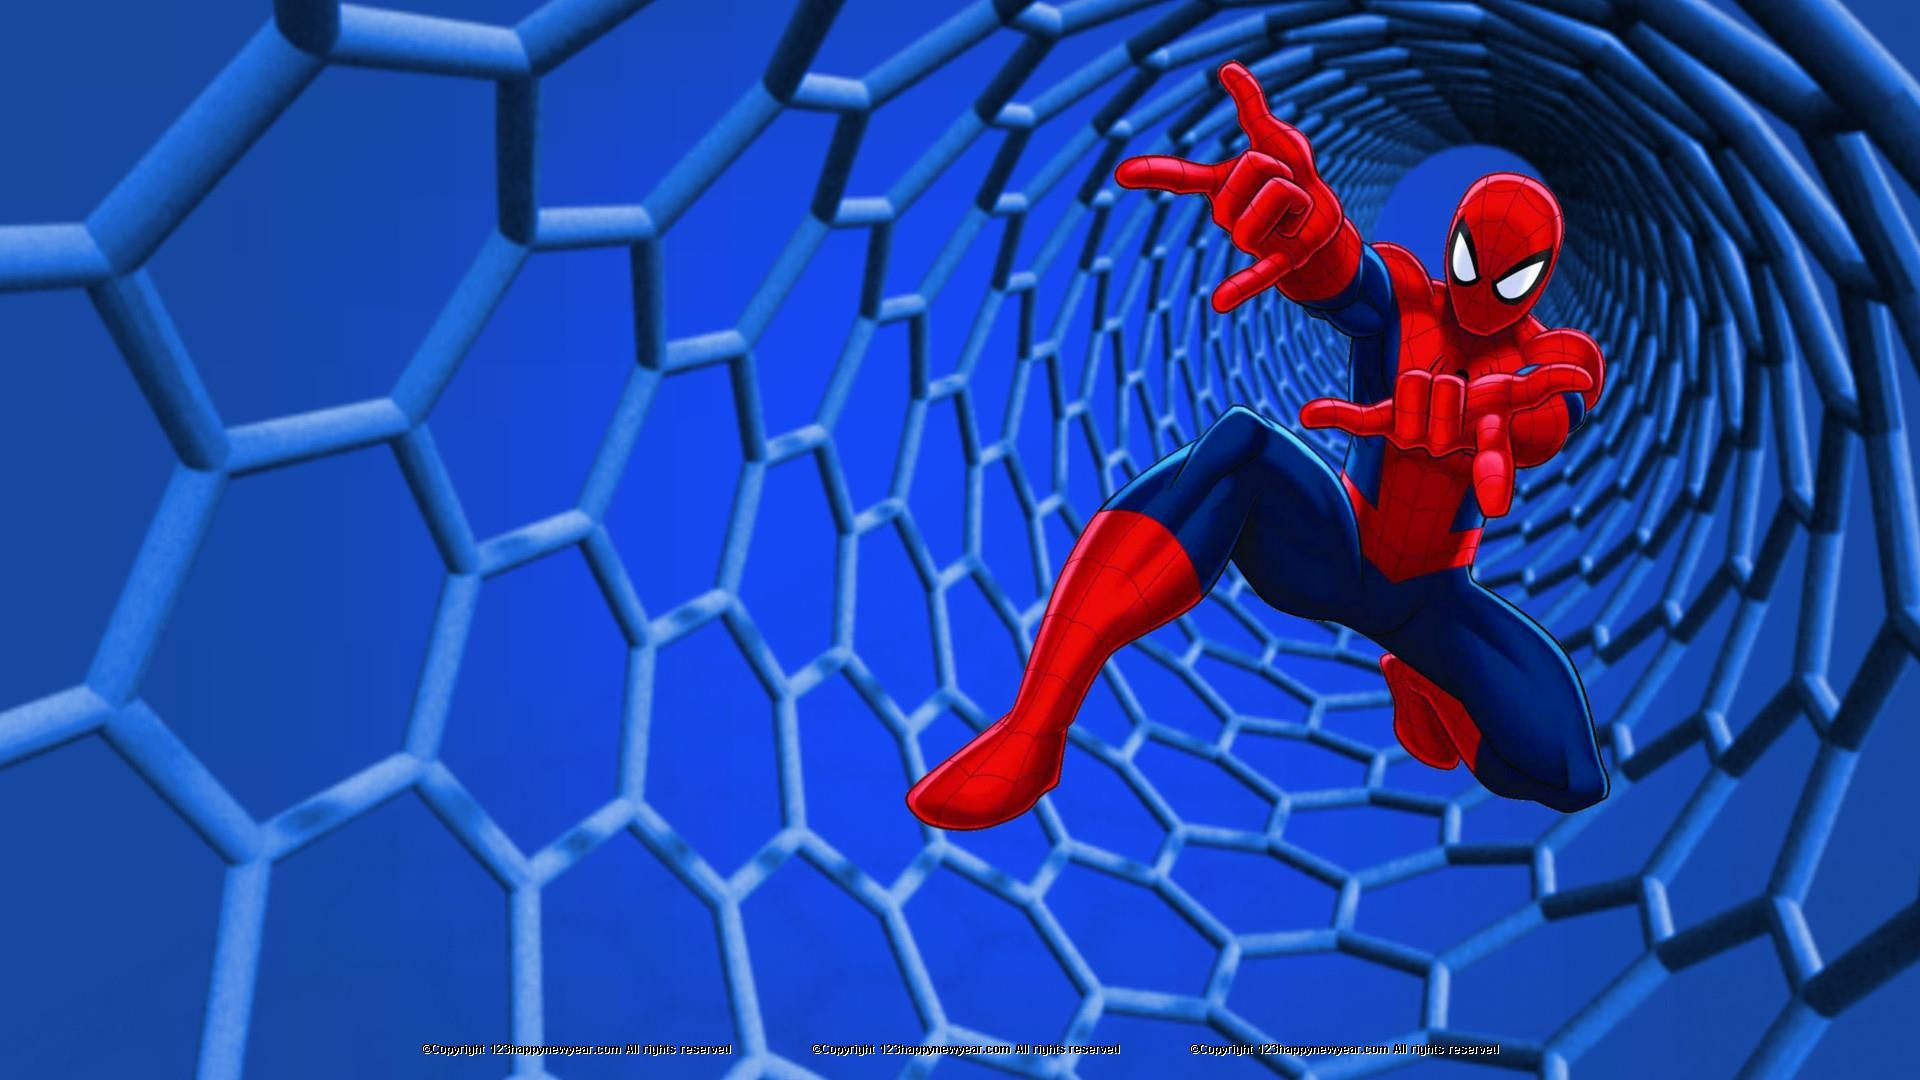 spiderman 3 wallpaper (67+ images)